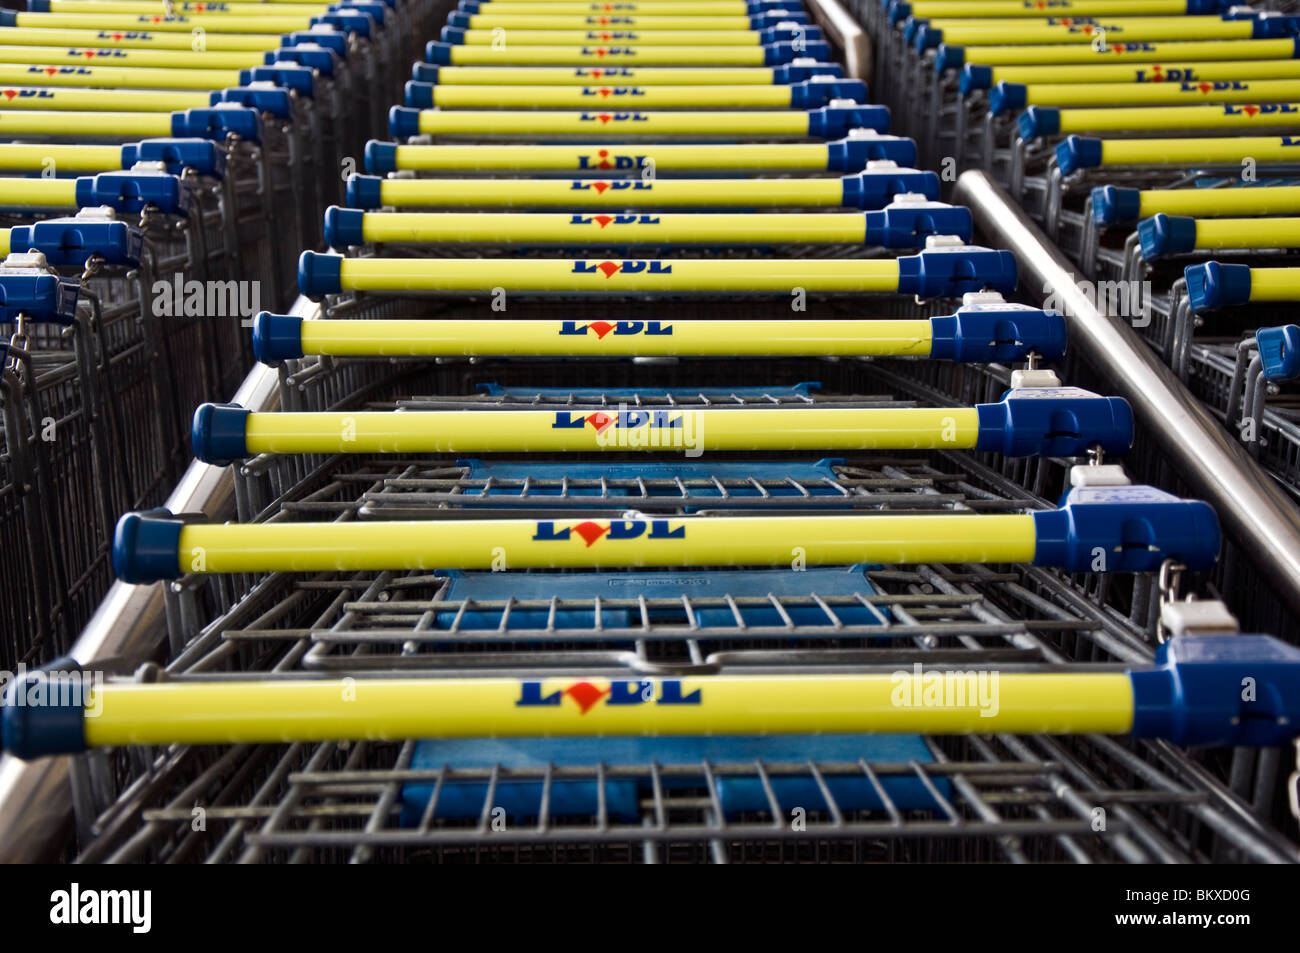 Shopping trolleys at LIDL's supermarket - Stock Image